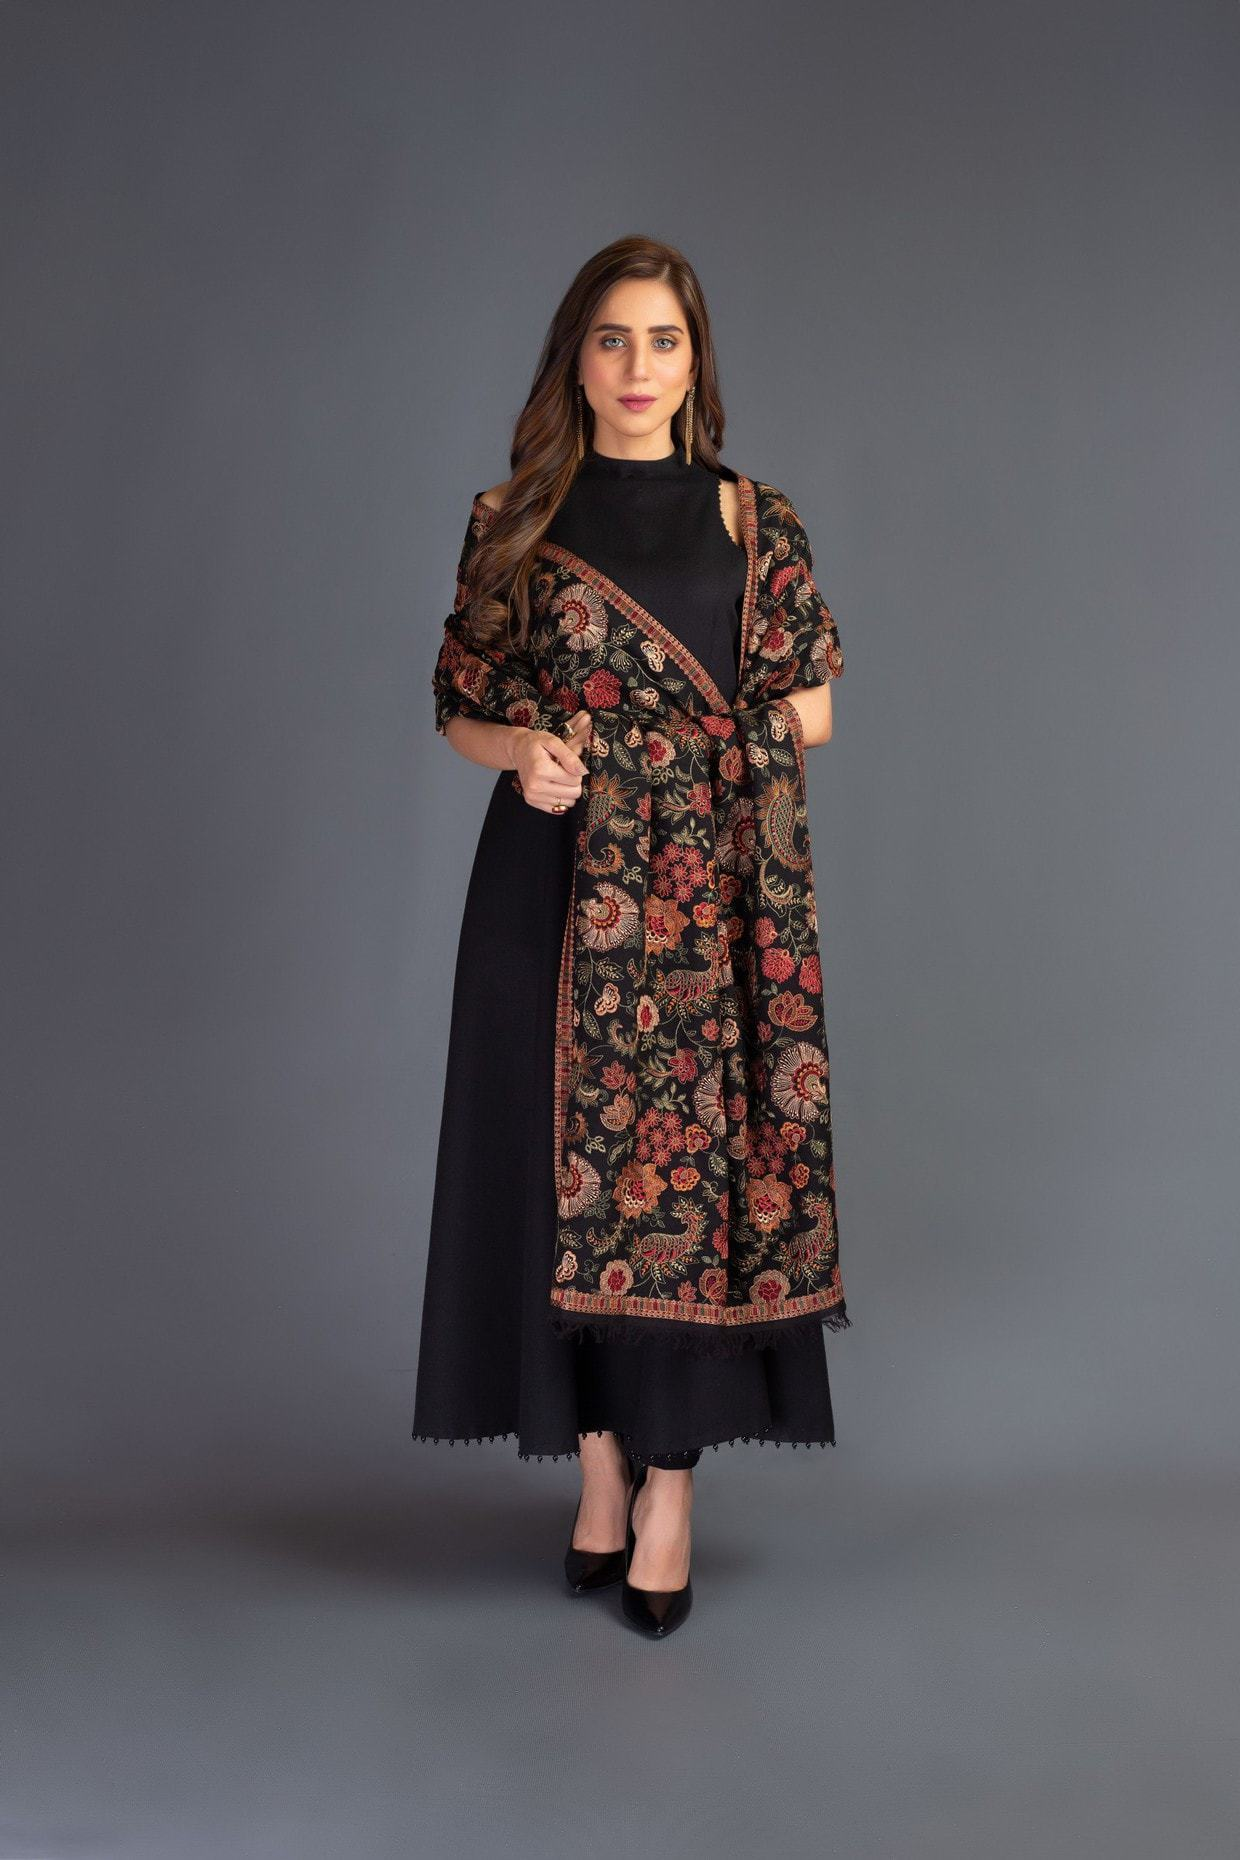 SARINNAH PREMIUM D68-FORMAL HEAVY EMBROIDED KARANDI LAWN SHAWL. - gracestore.pk